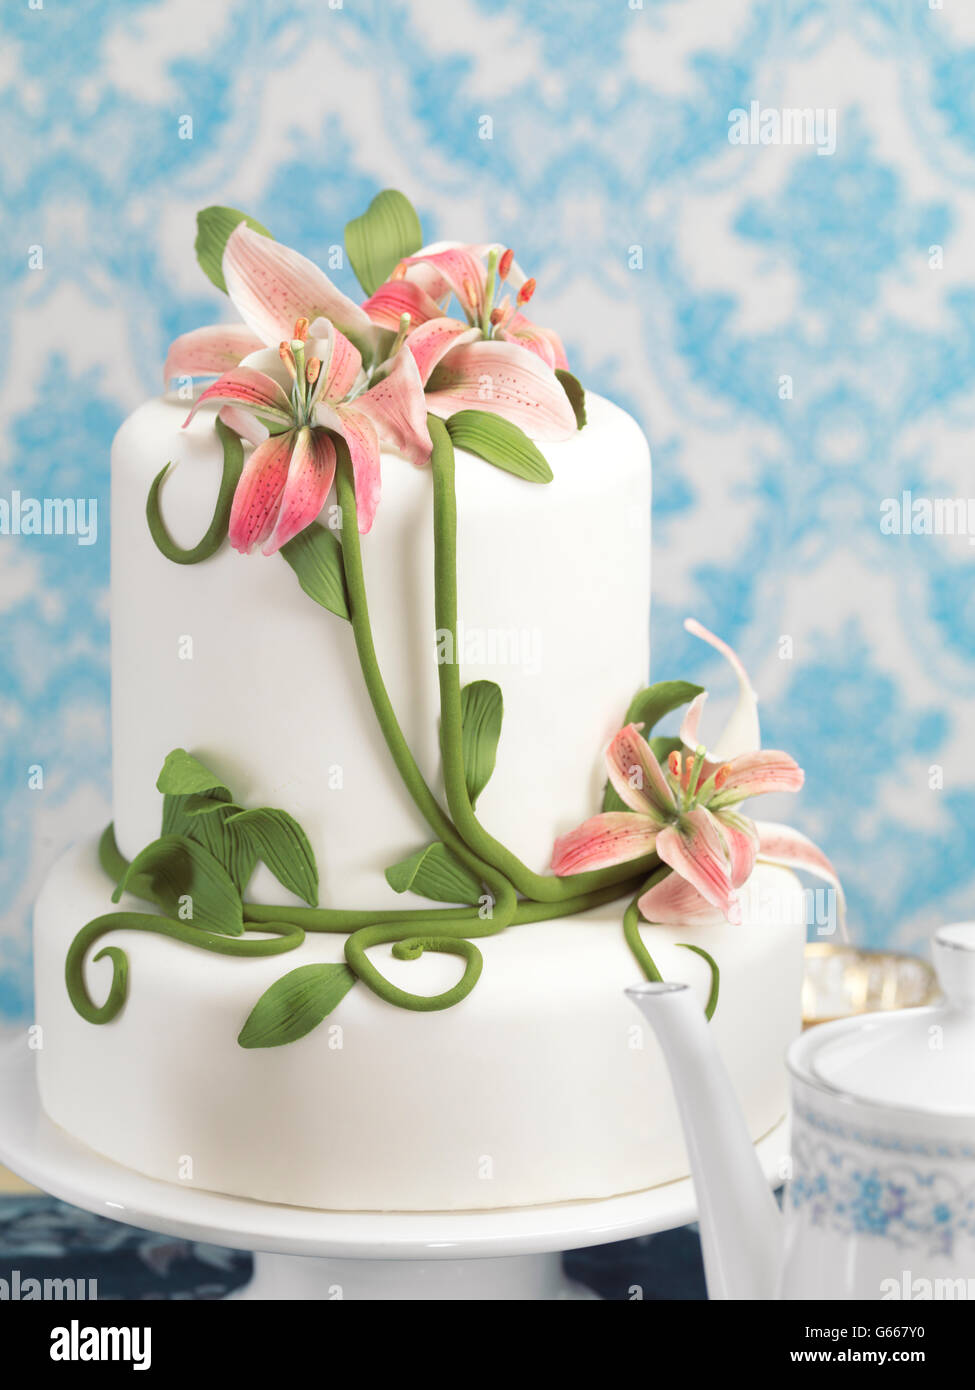 Fancy cake decorated with lilies - Stock Image